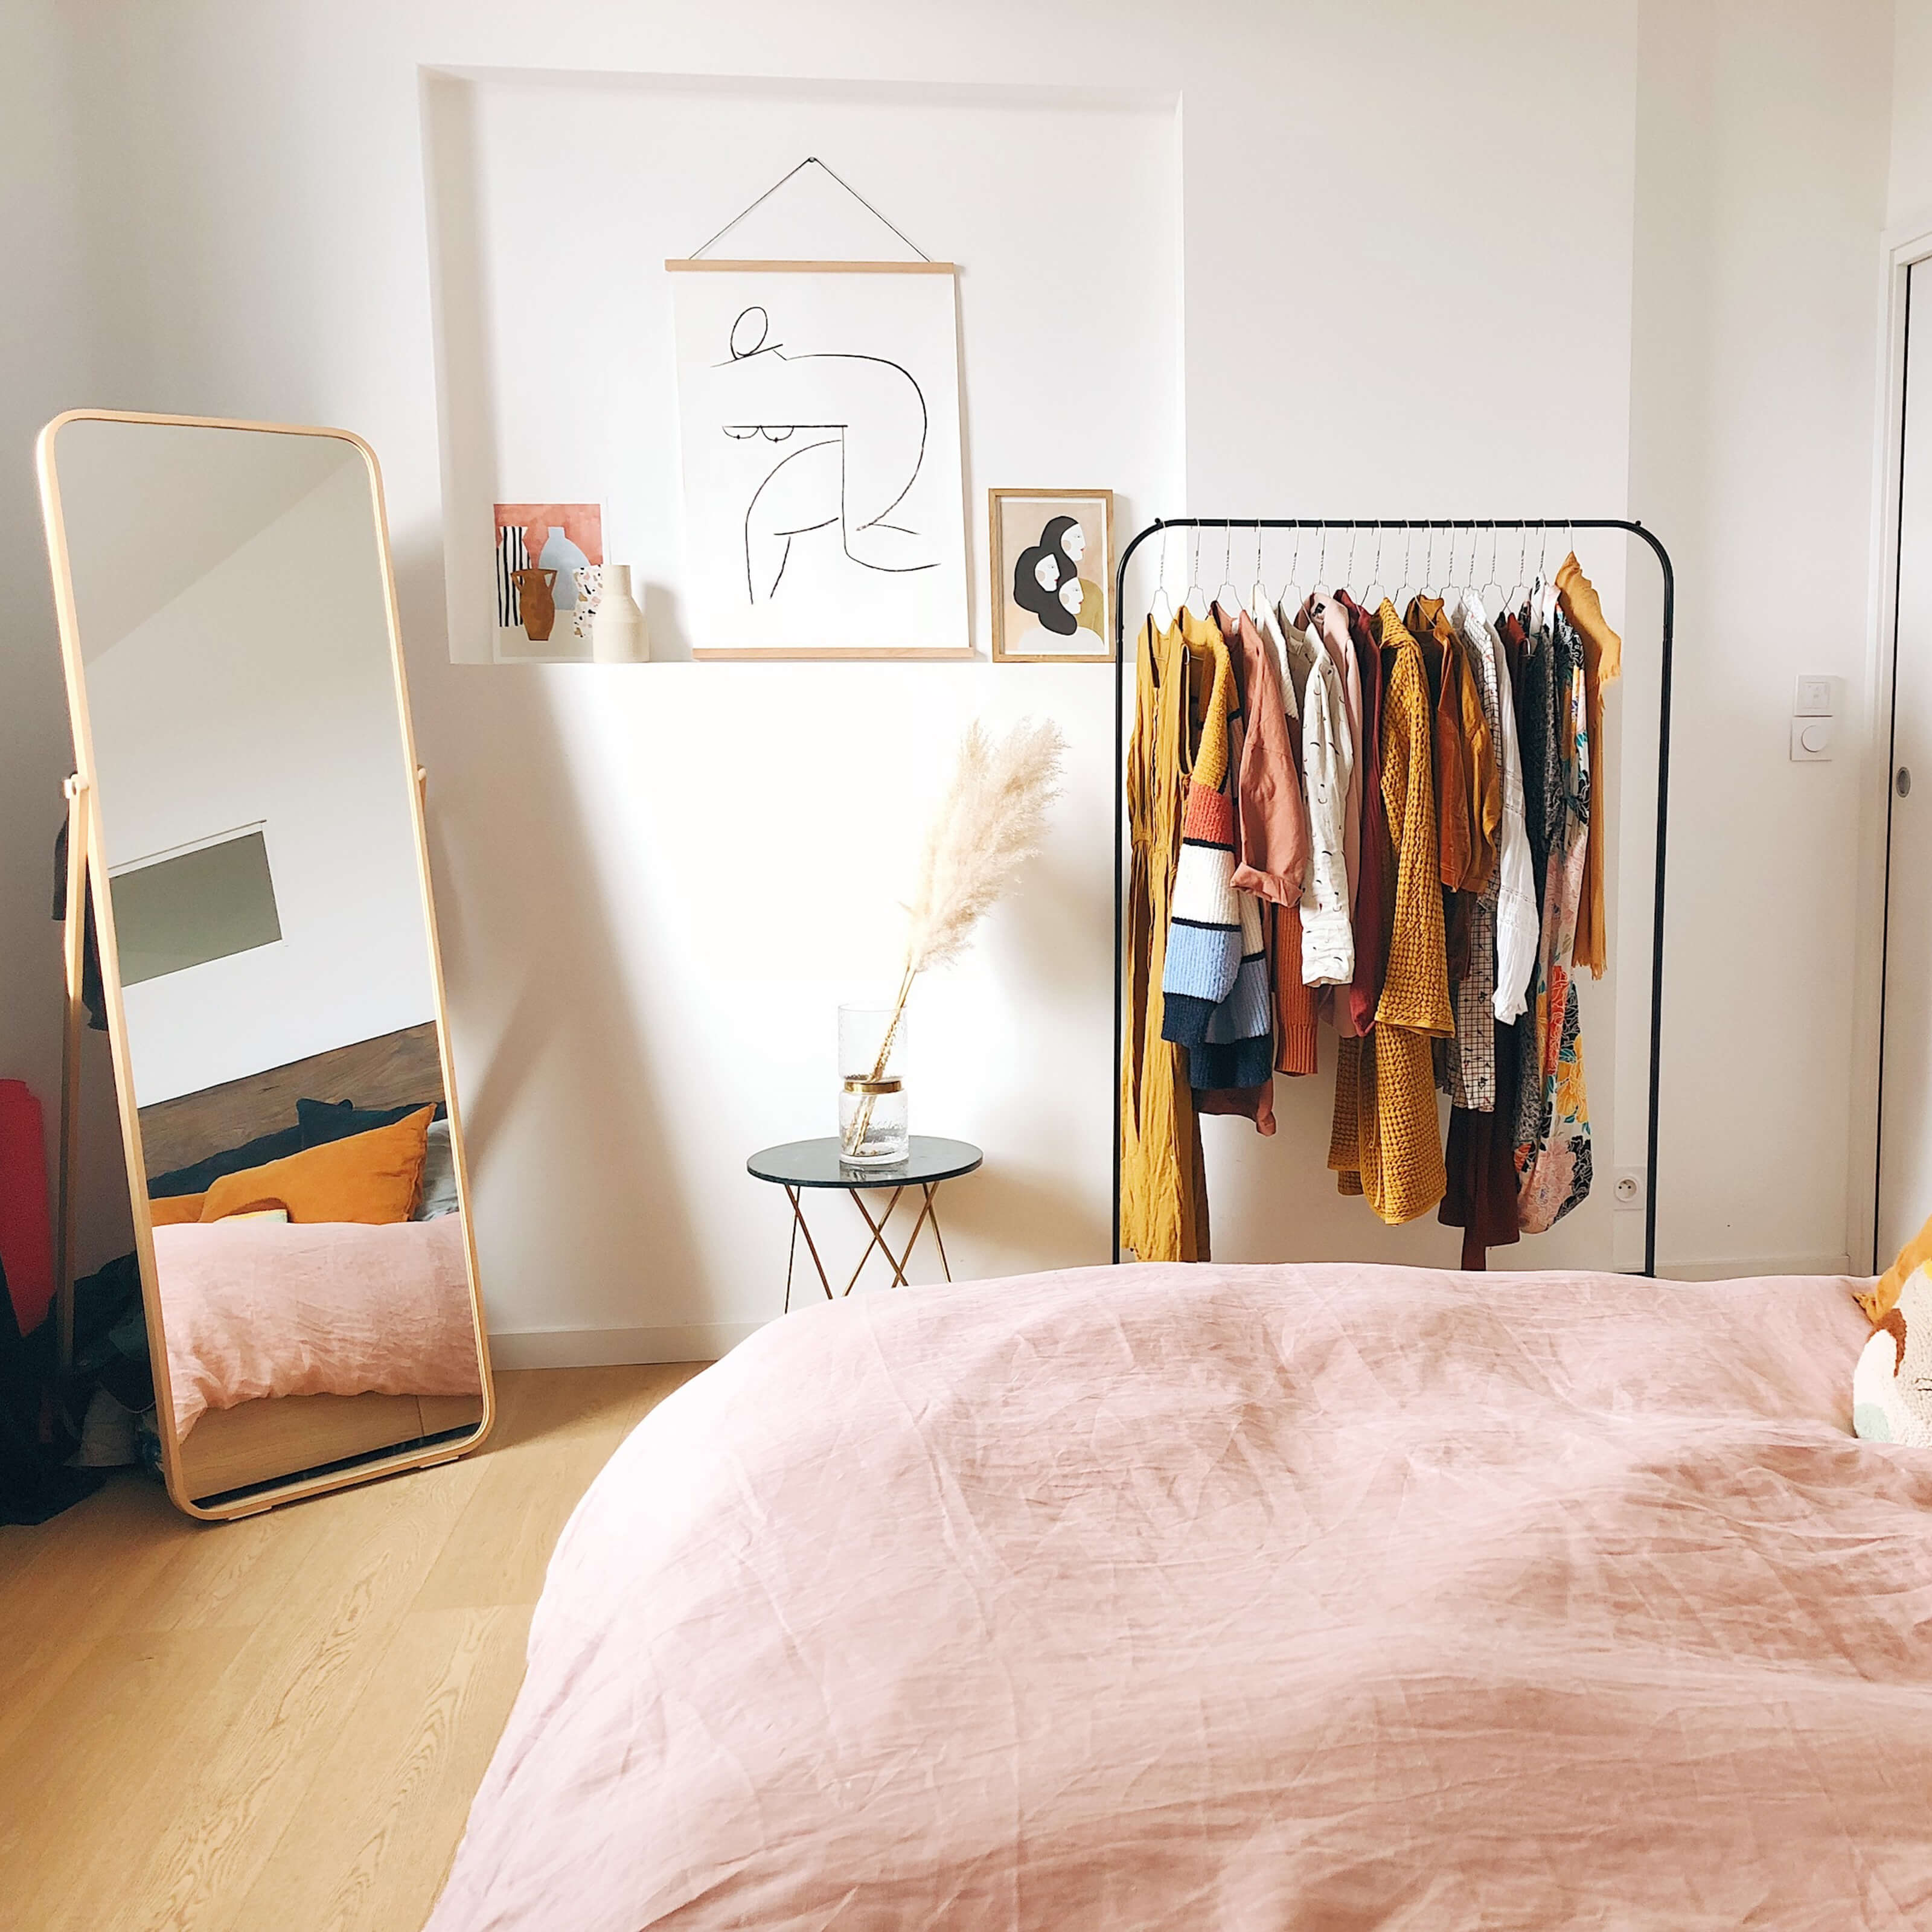 Why You Should Make Sure Your Airbnb Is Ethical